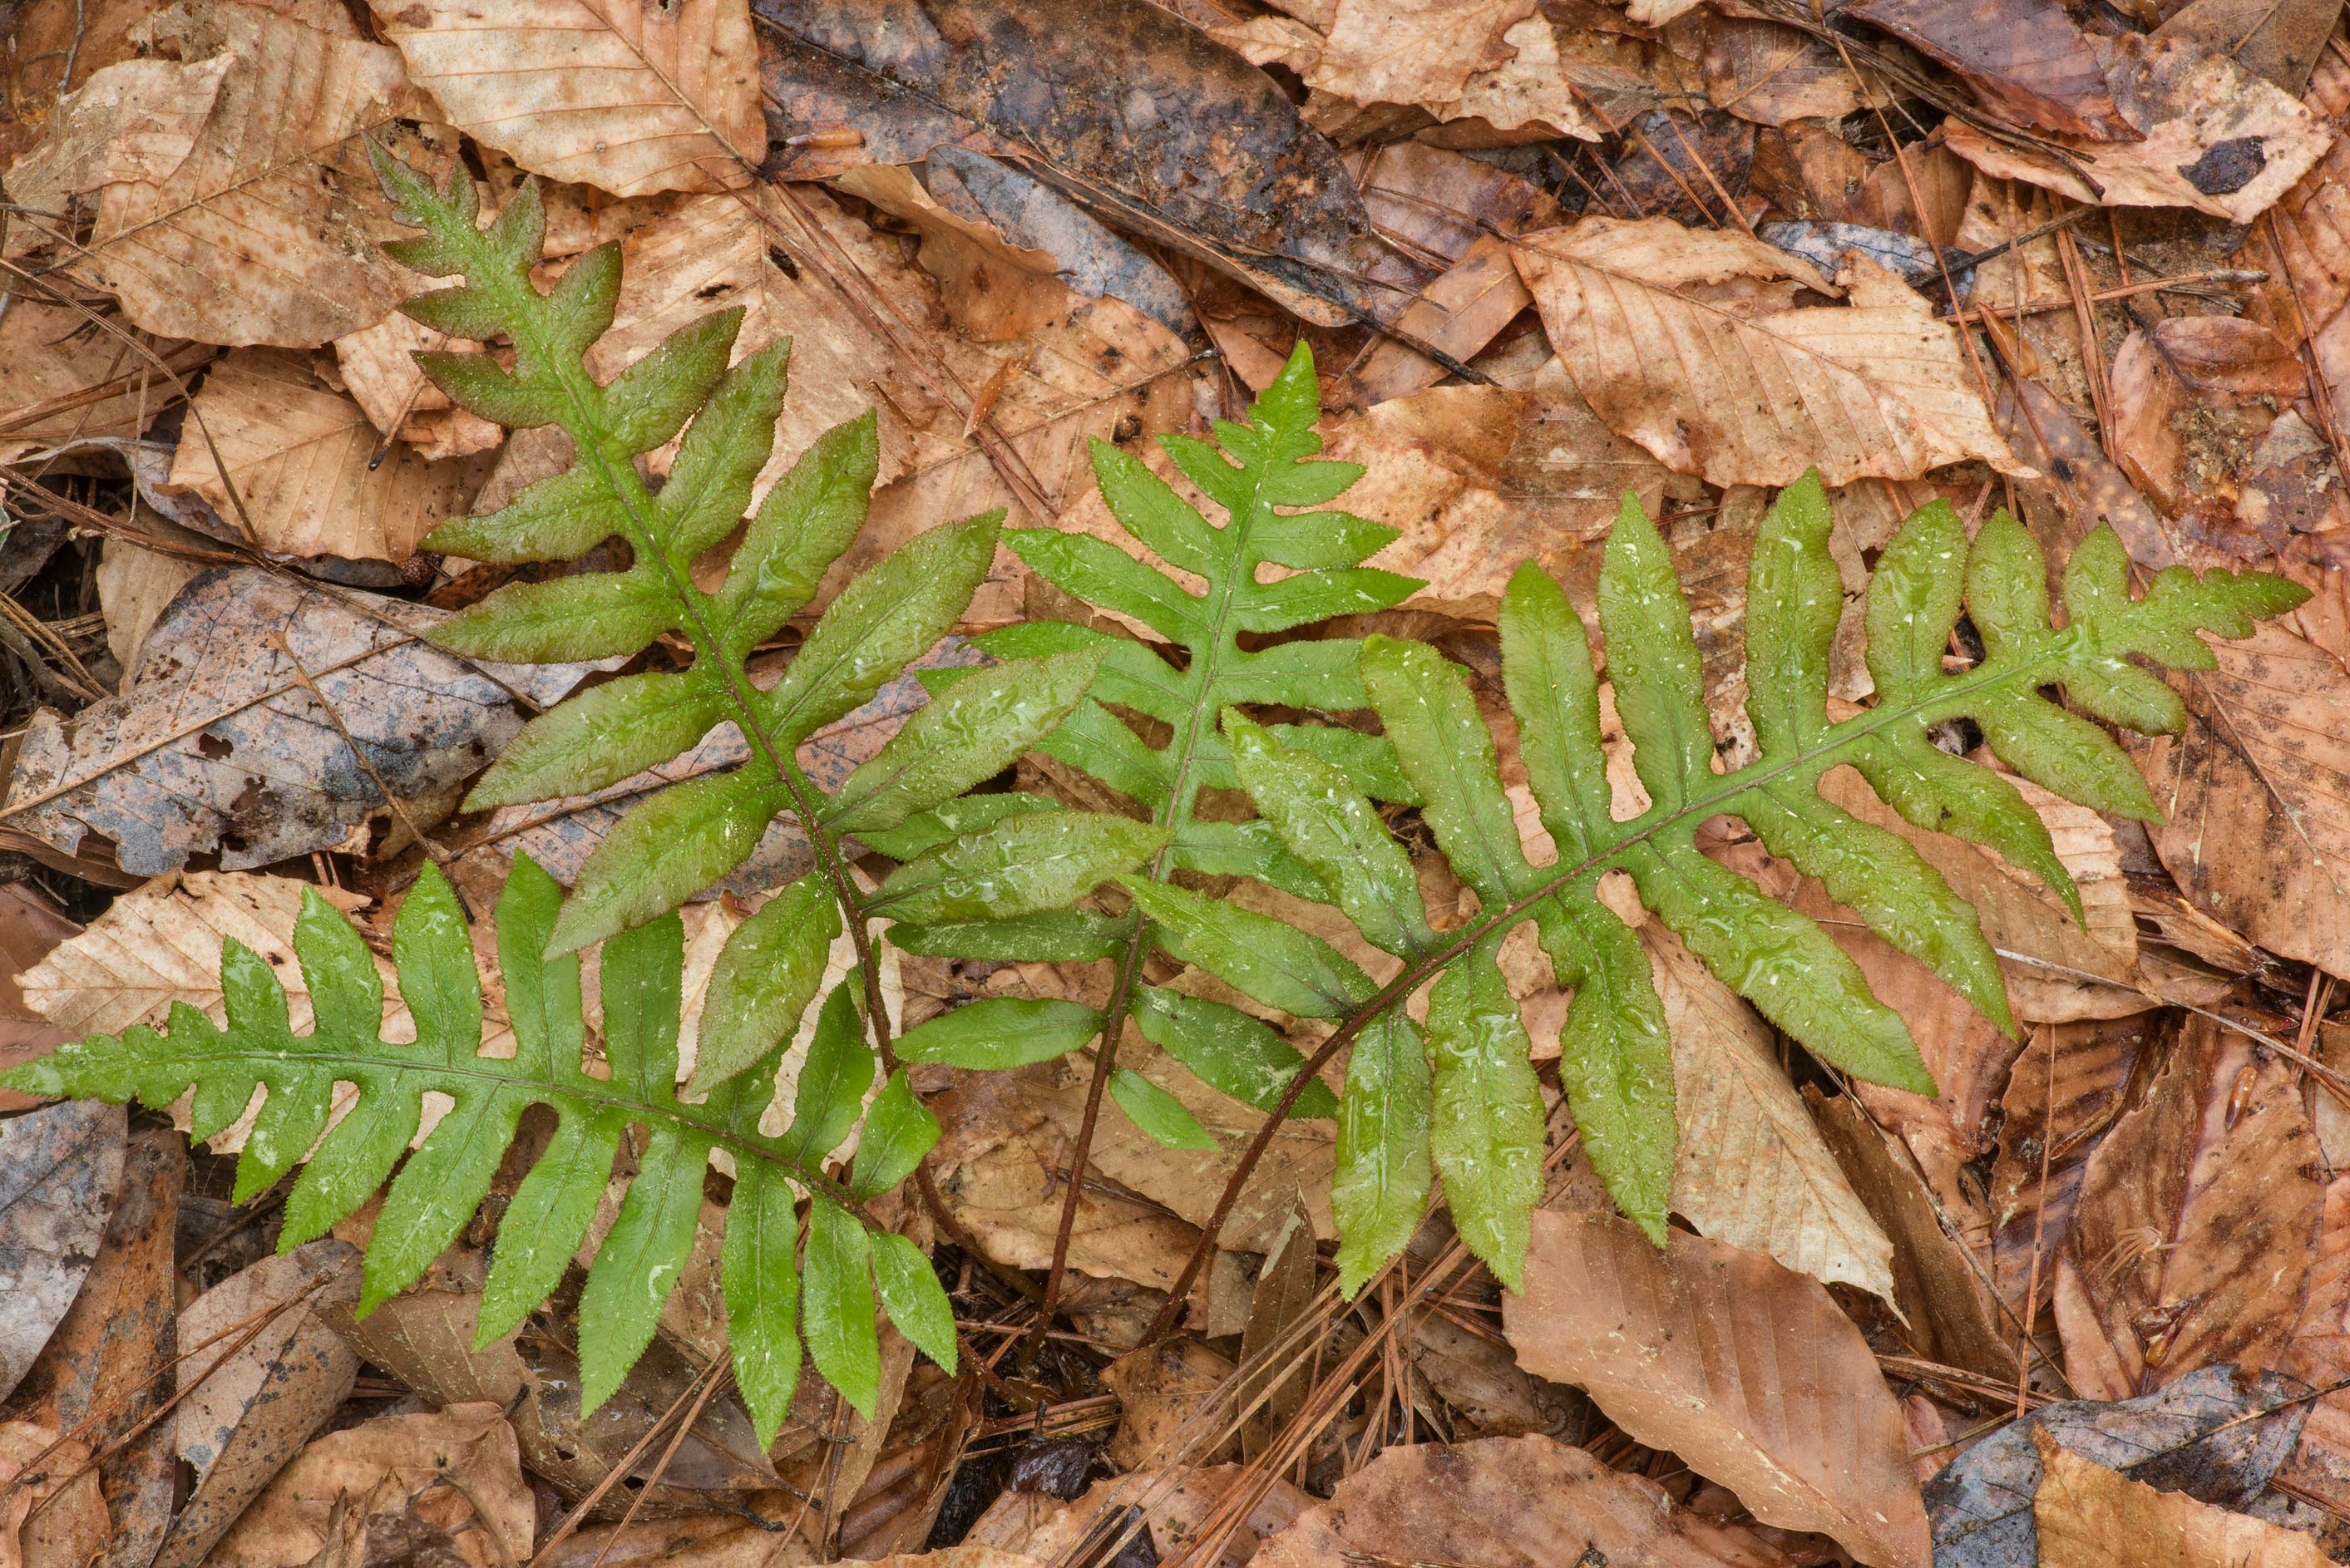 Emerging plant of netted chainfern (Woodwardia...National Forest. Shepherd, Texas